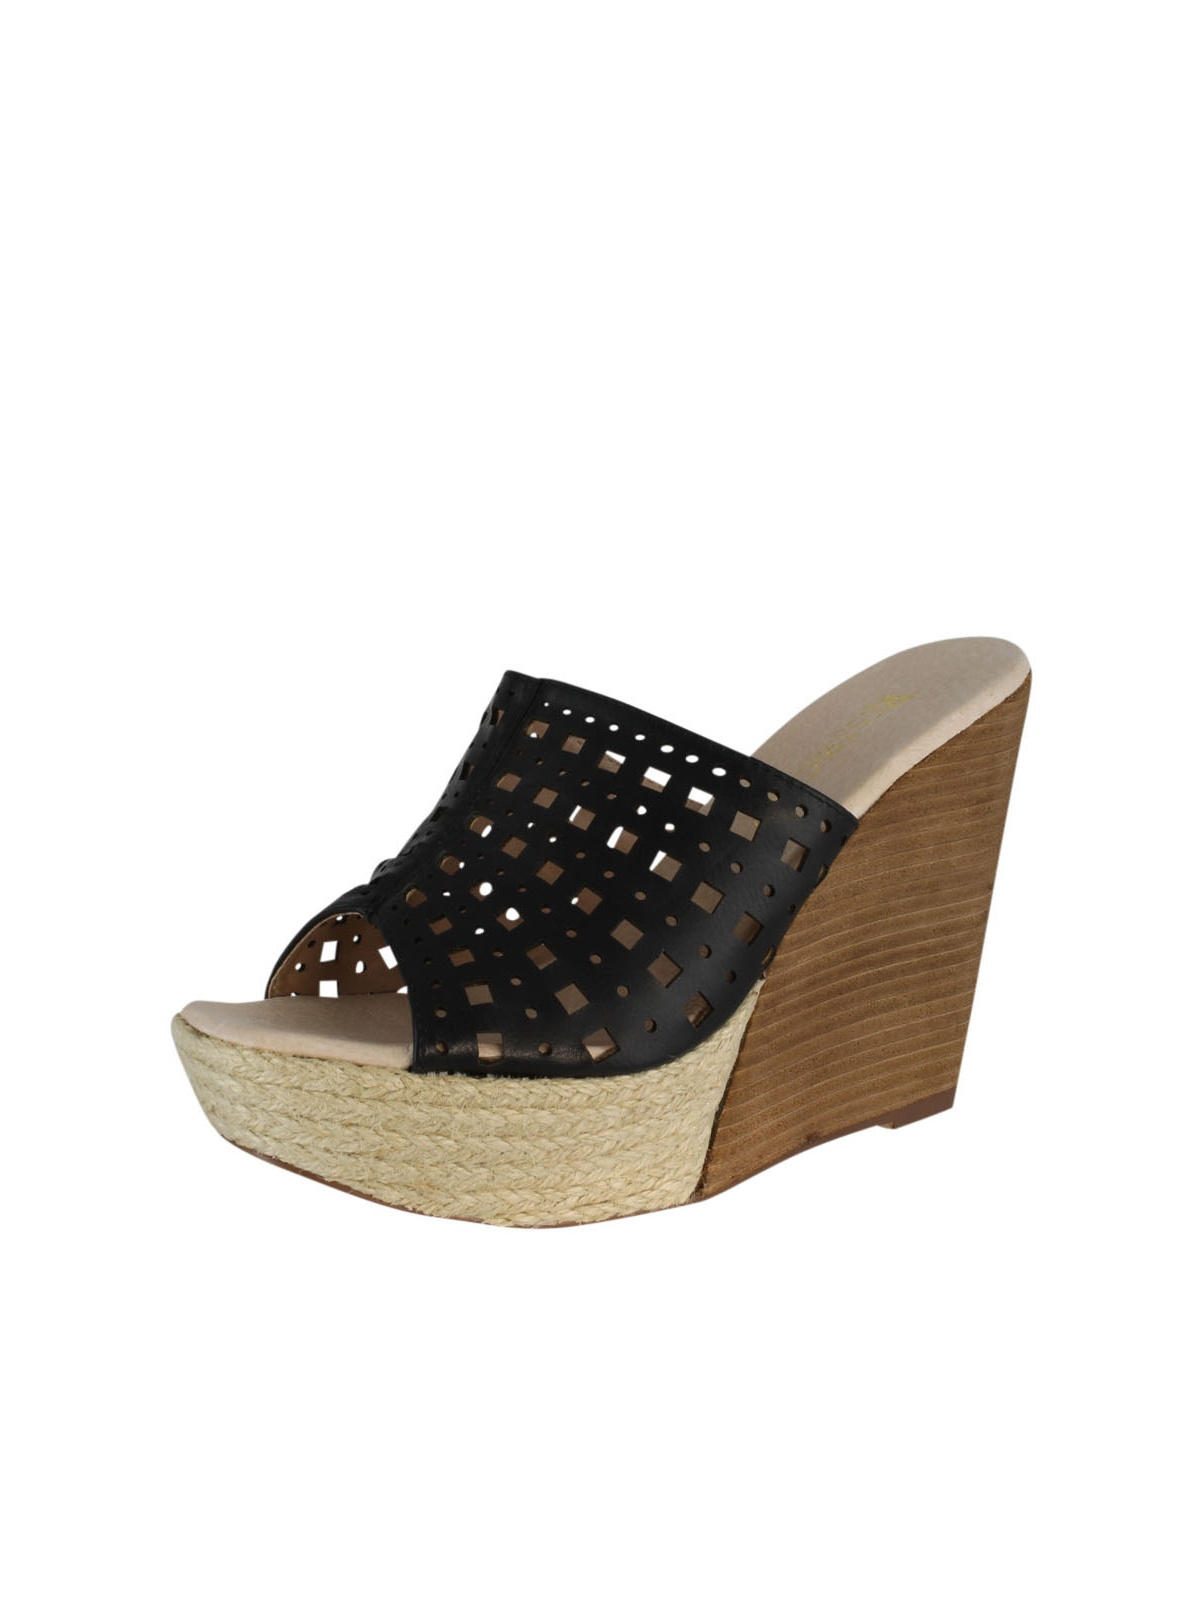 Restricted Womens Spumoni Wedge Sandals Economical, stylish, and eye-catching shoes